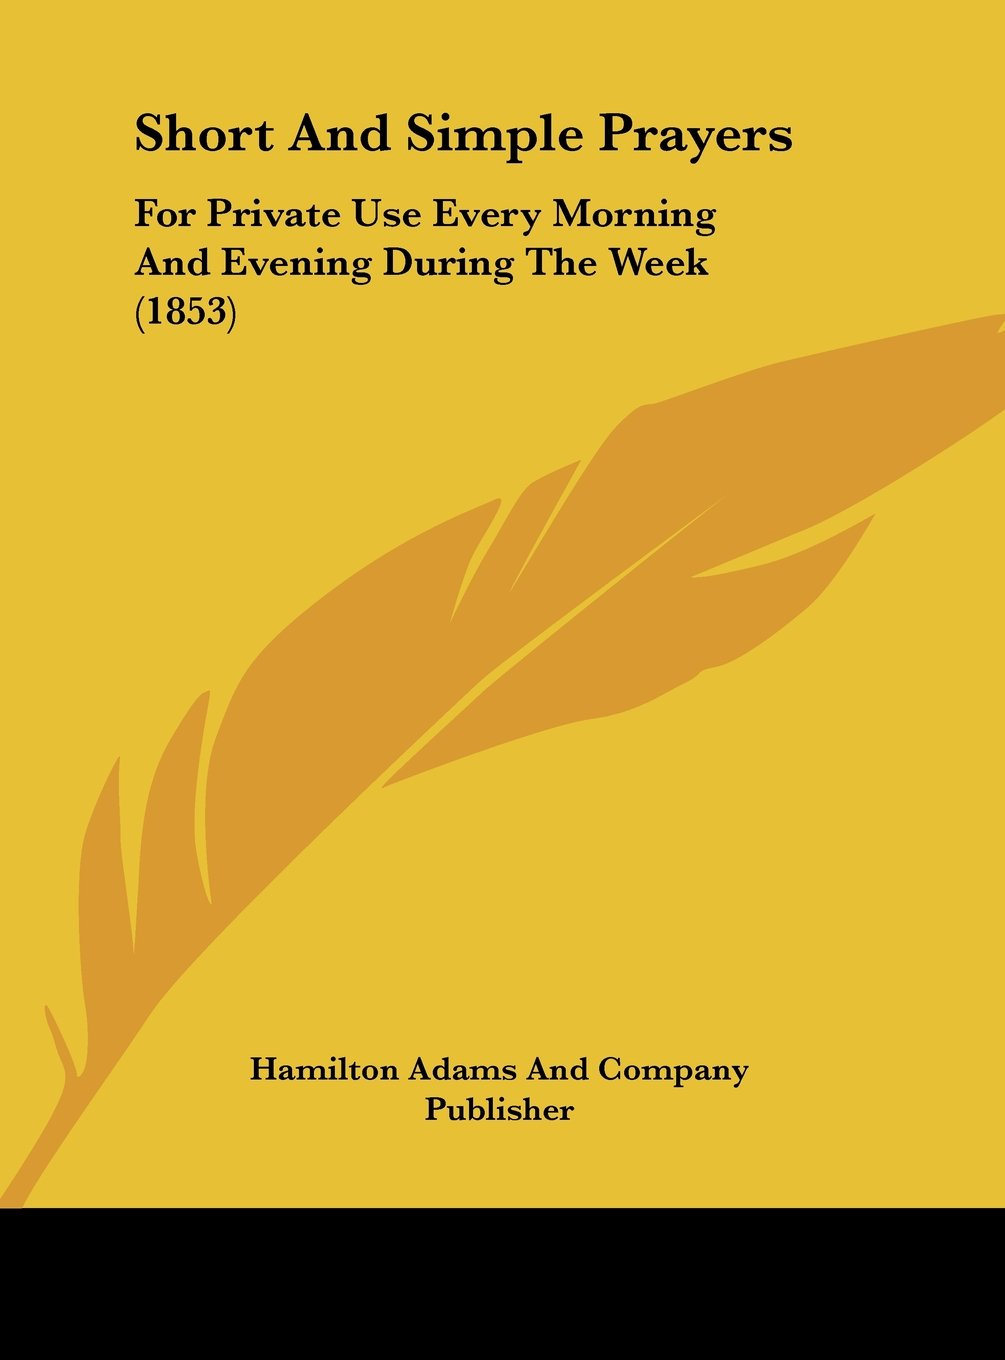 Download Short and Simple Prayers: For Private Use Every Morning and Evening During the Week (1853) PDF